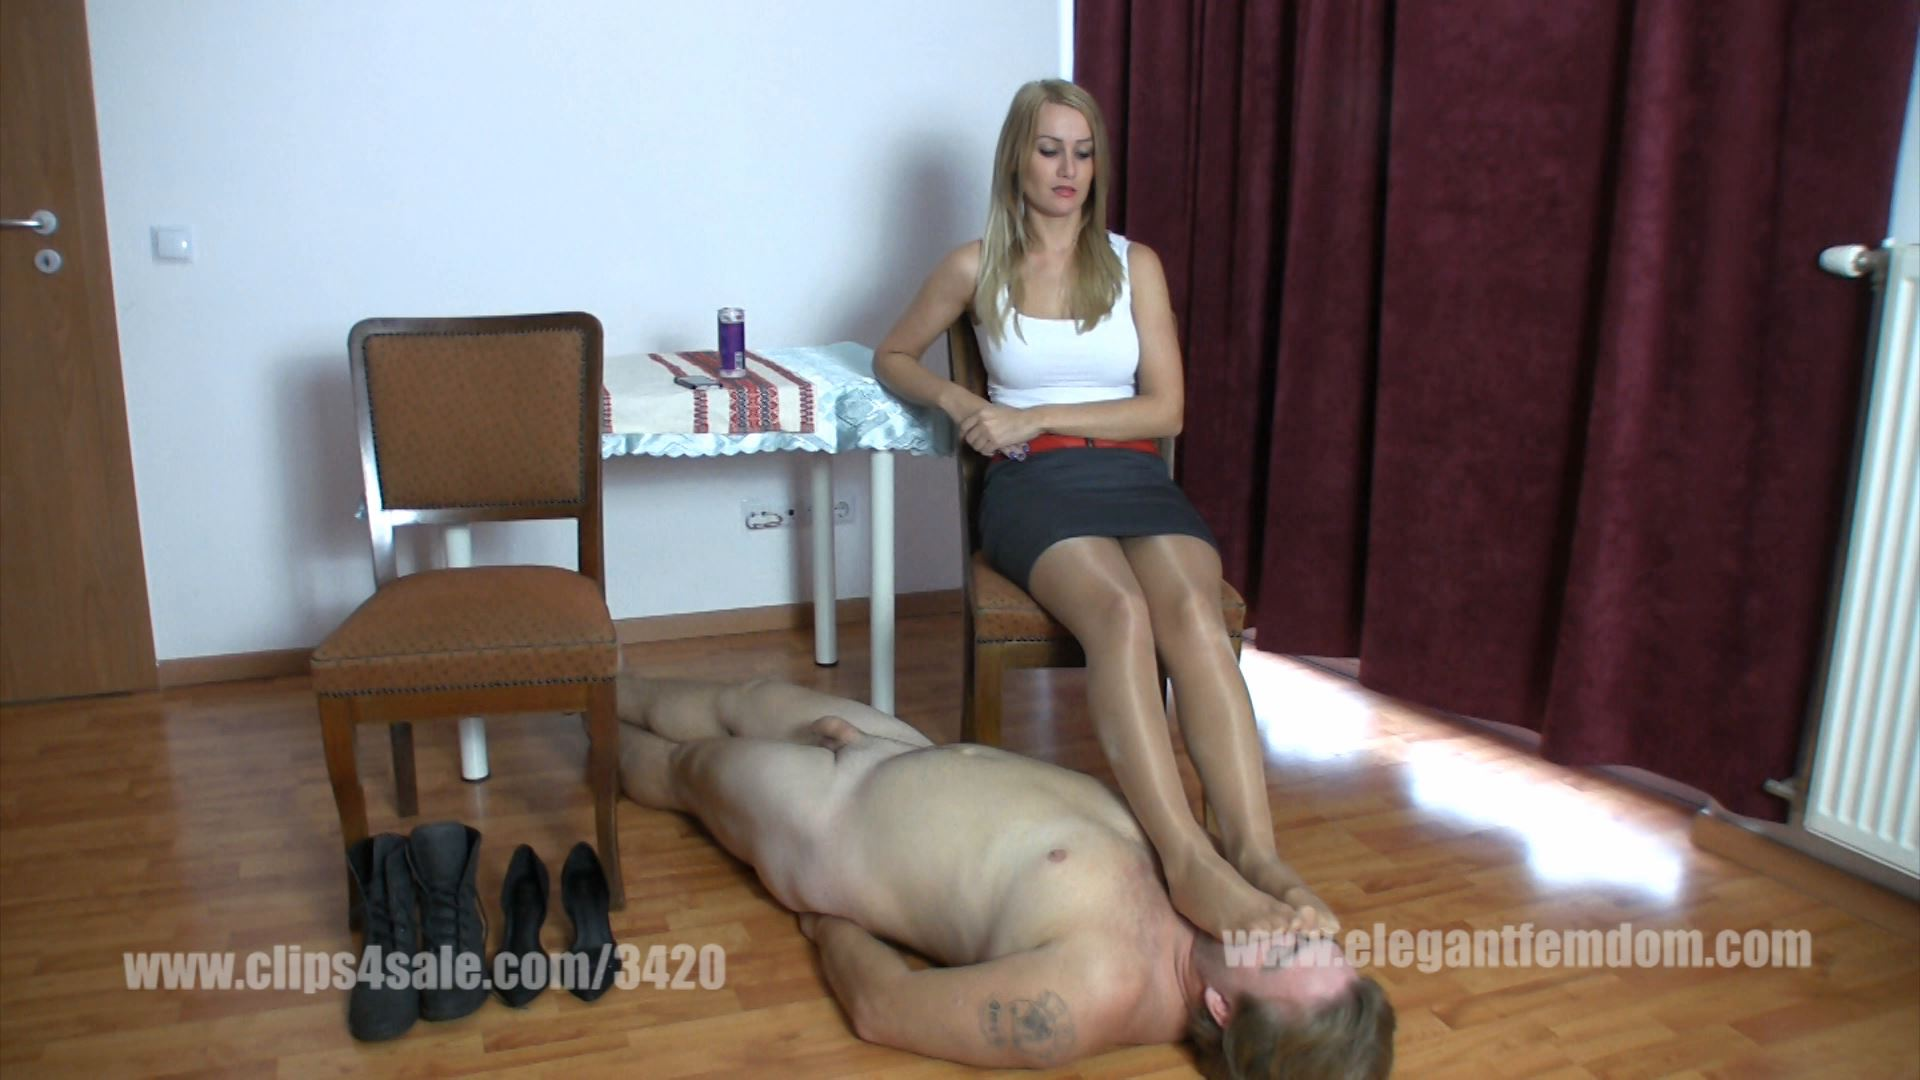 Lady Demona sits and relaxes - ELEGANTFEMDOM - FULL HD/1080p/MP4